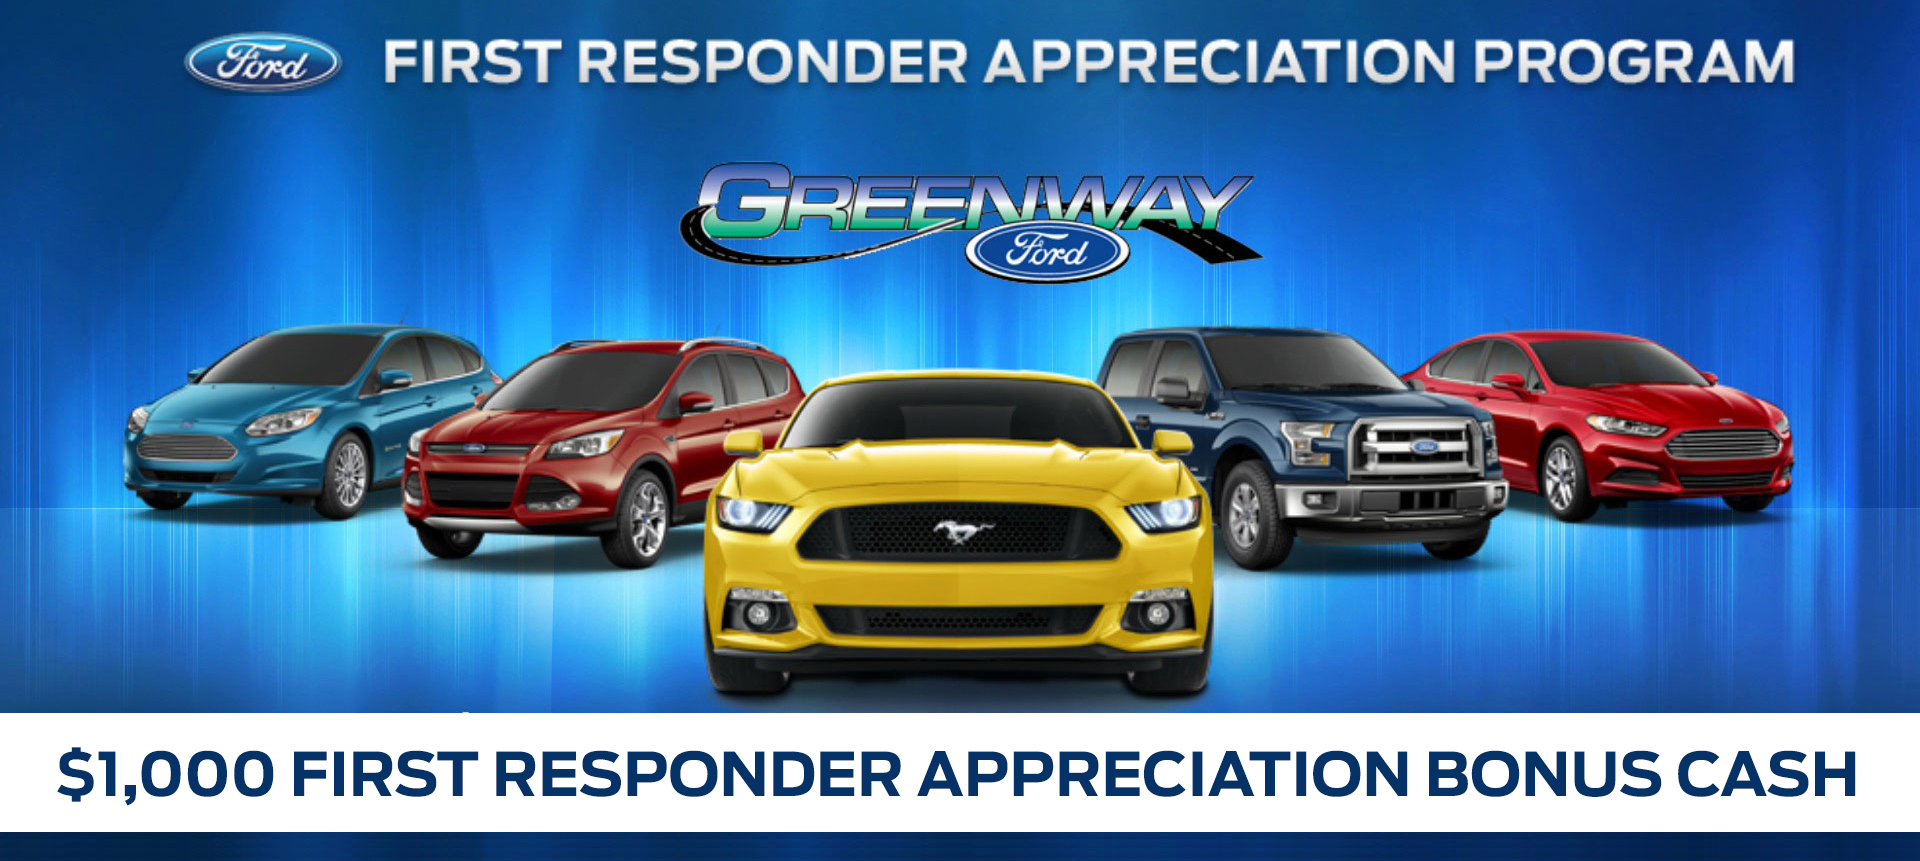 $1000 First responder car program from Greenway Ford in Orlando FL  sc 1 st  Greenway Ford & First Responders Appreciation Program - Greenway Ford markmcfarlin.com